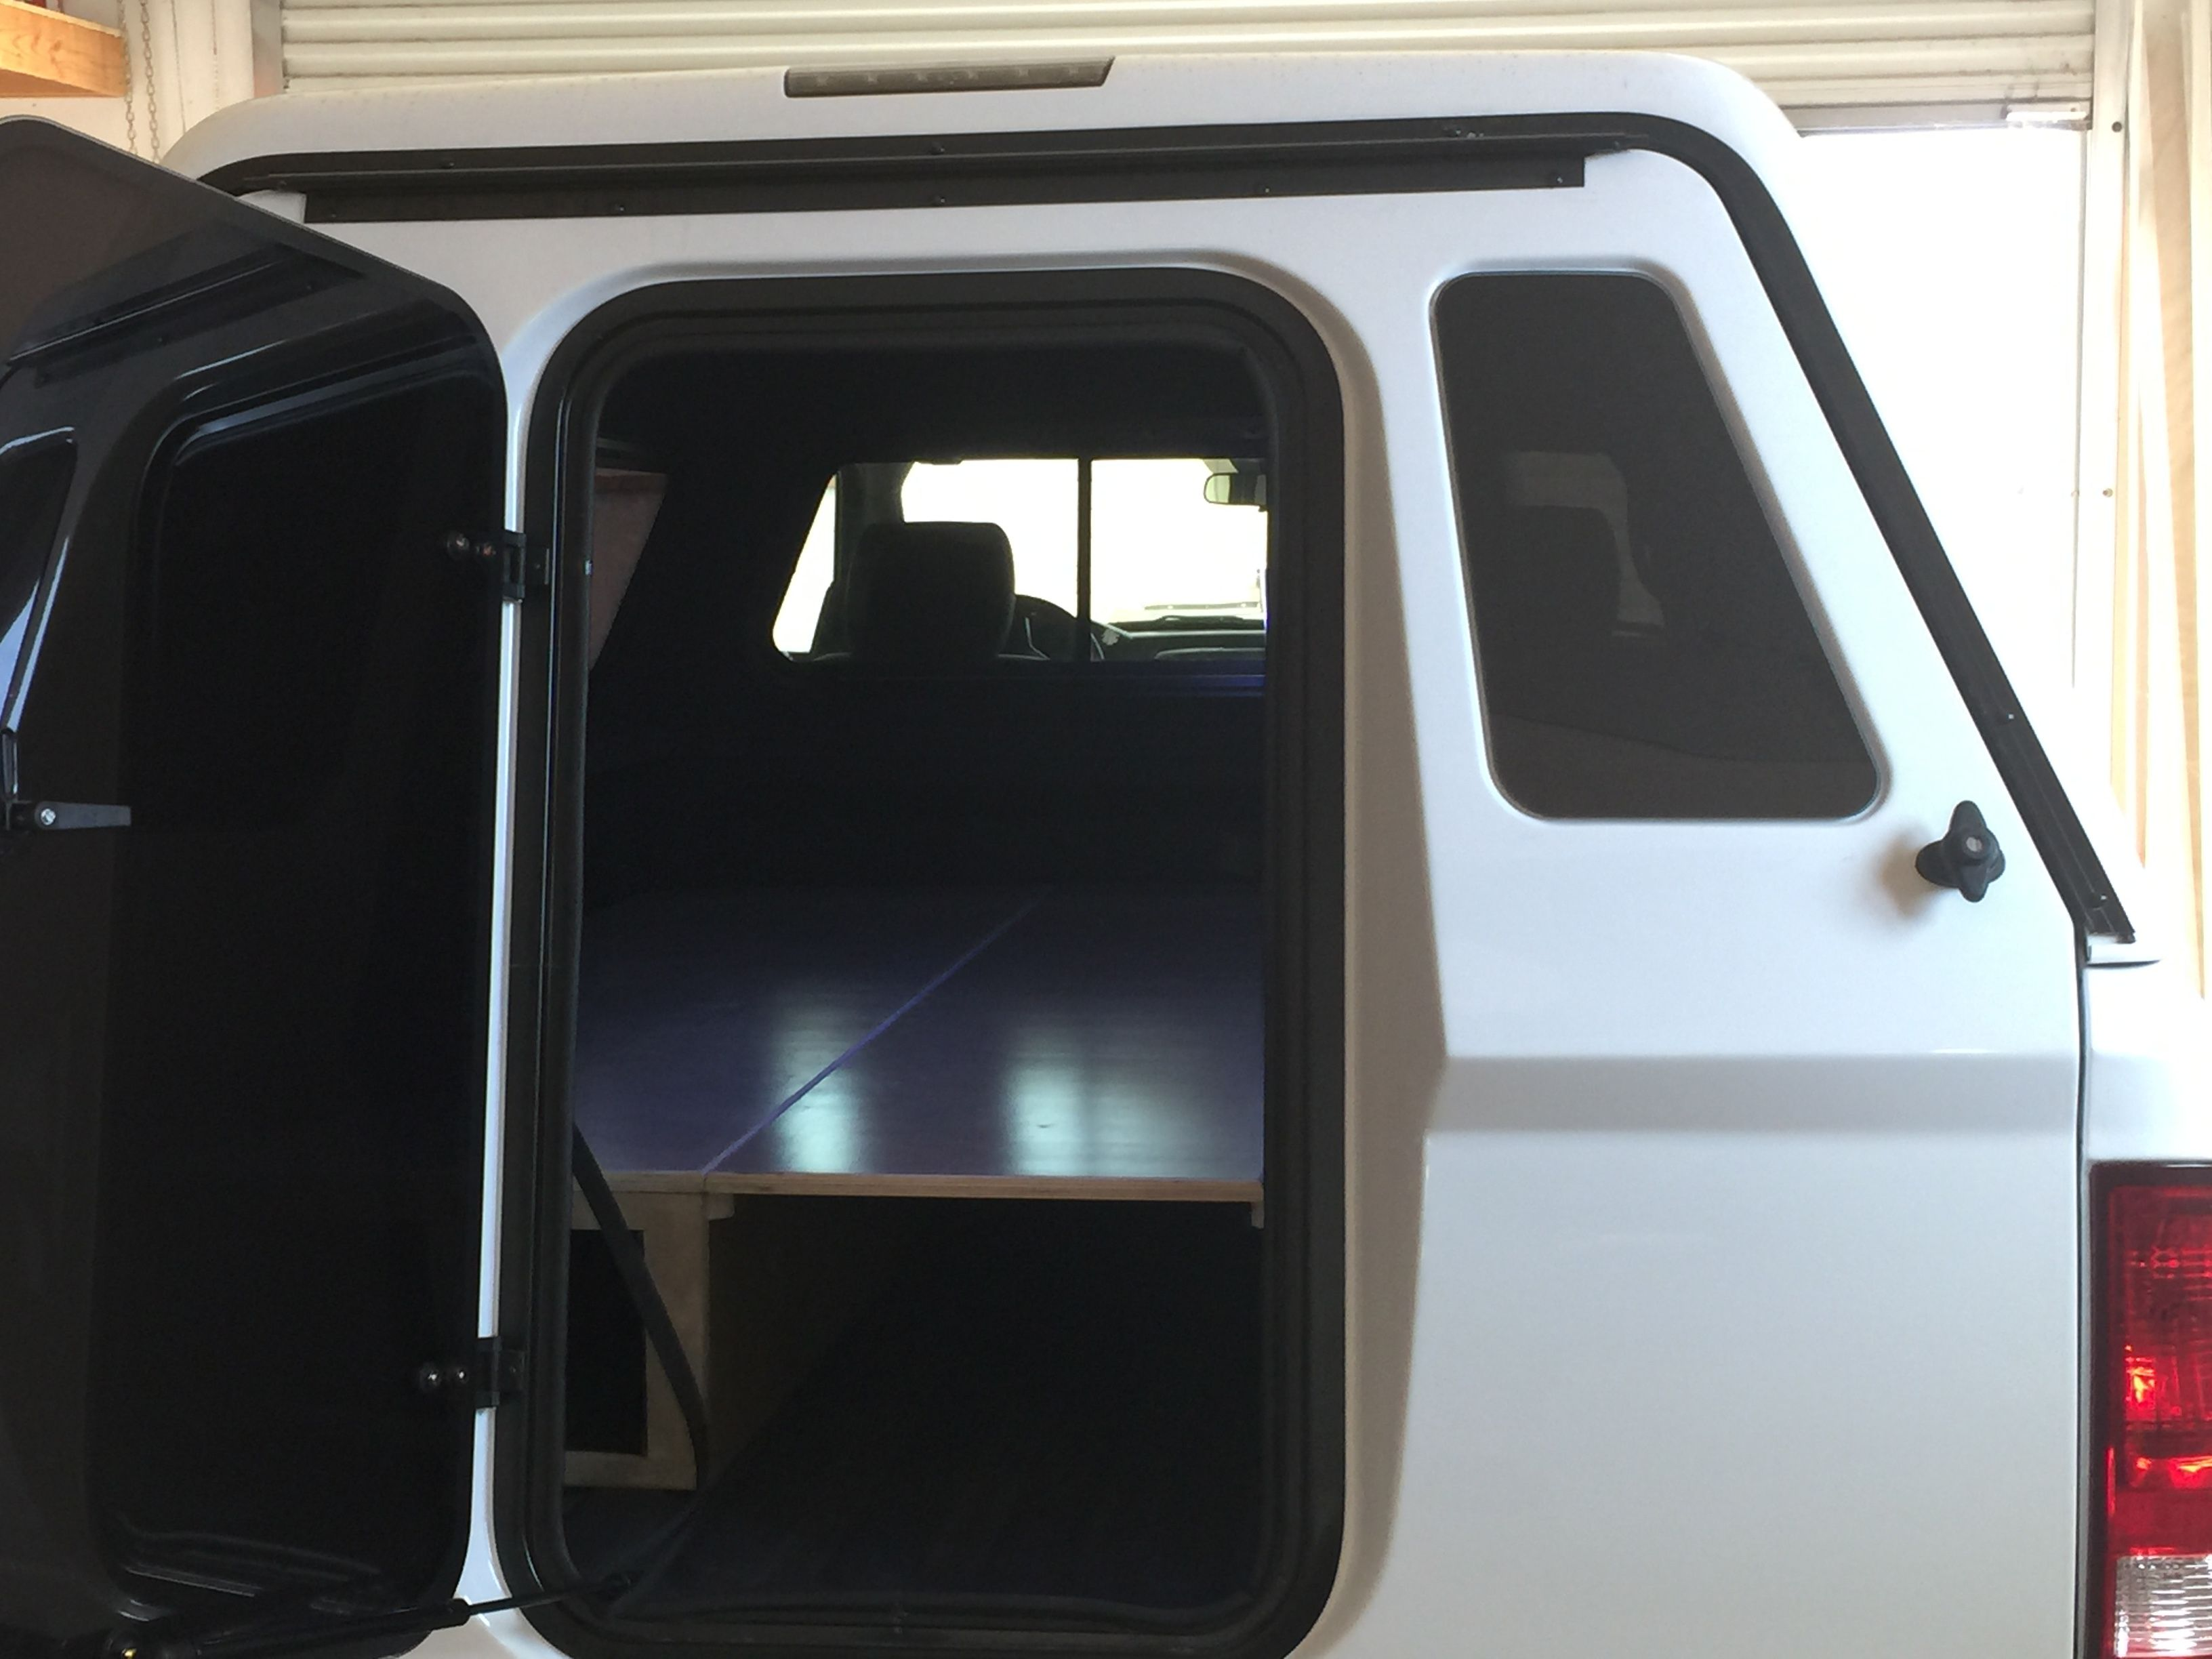 Rear Door Open View Camper Is An Are Mx Shell With Walk Through Door Truckcampershell Camping Campershellb Truck Camper Shells Camper Shells Pickup Camper